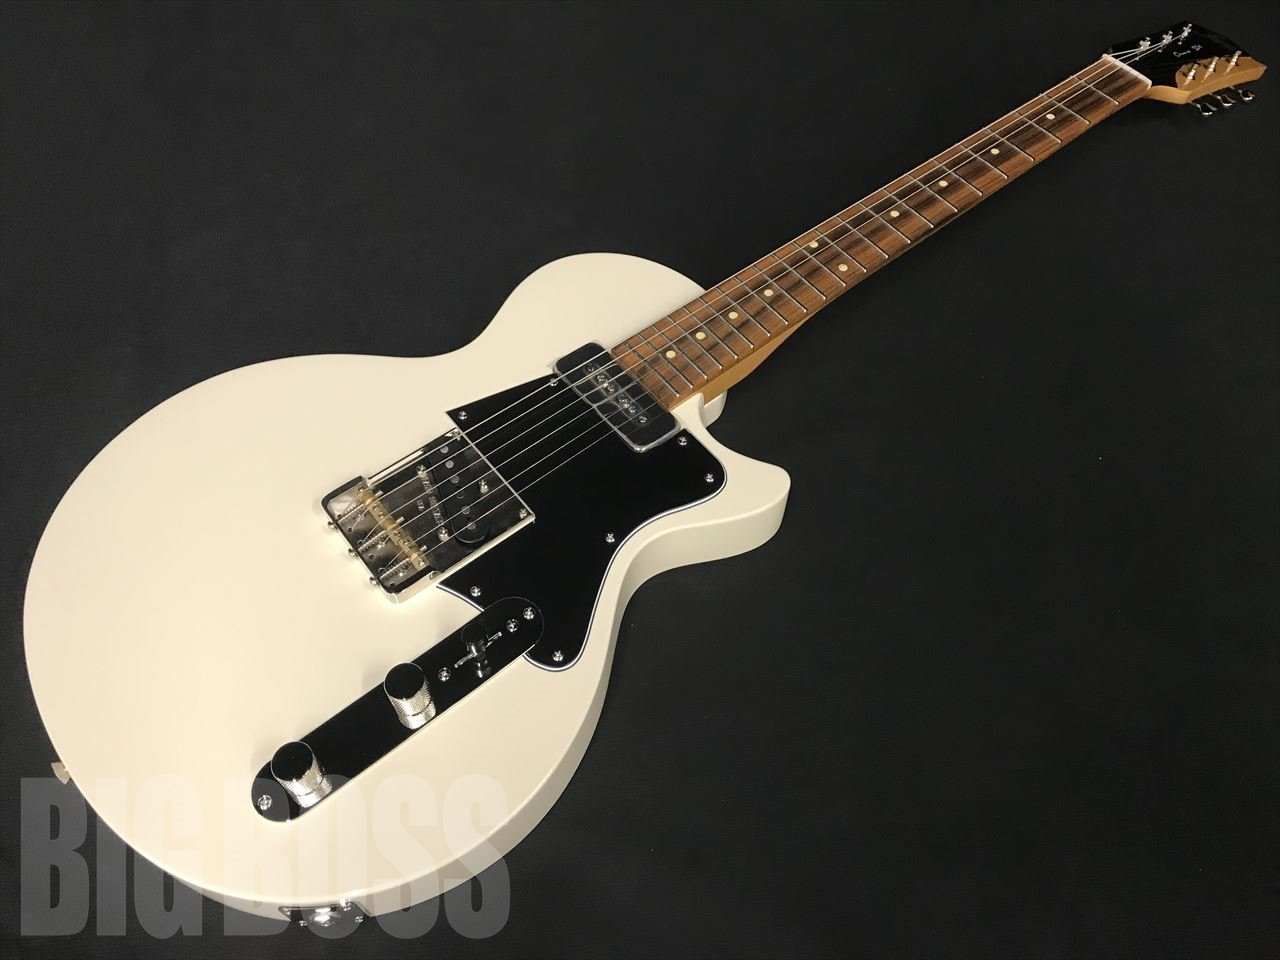 【即納可能】Fano(ファーノ) Omnis SP6 T90 Olympic White 駅前店